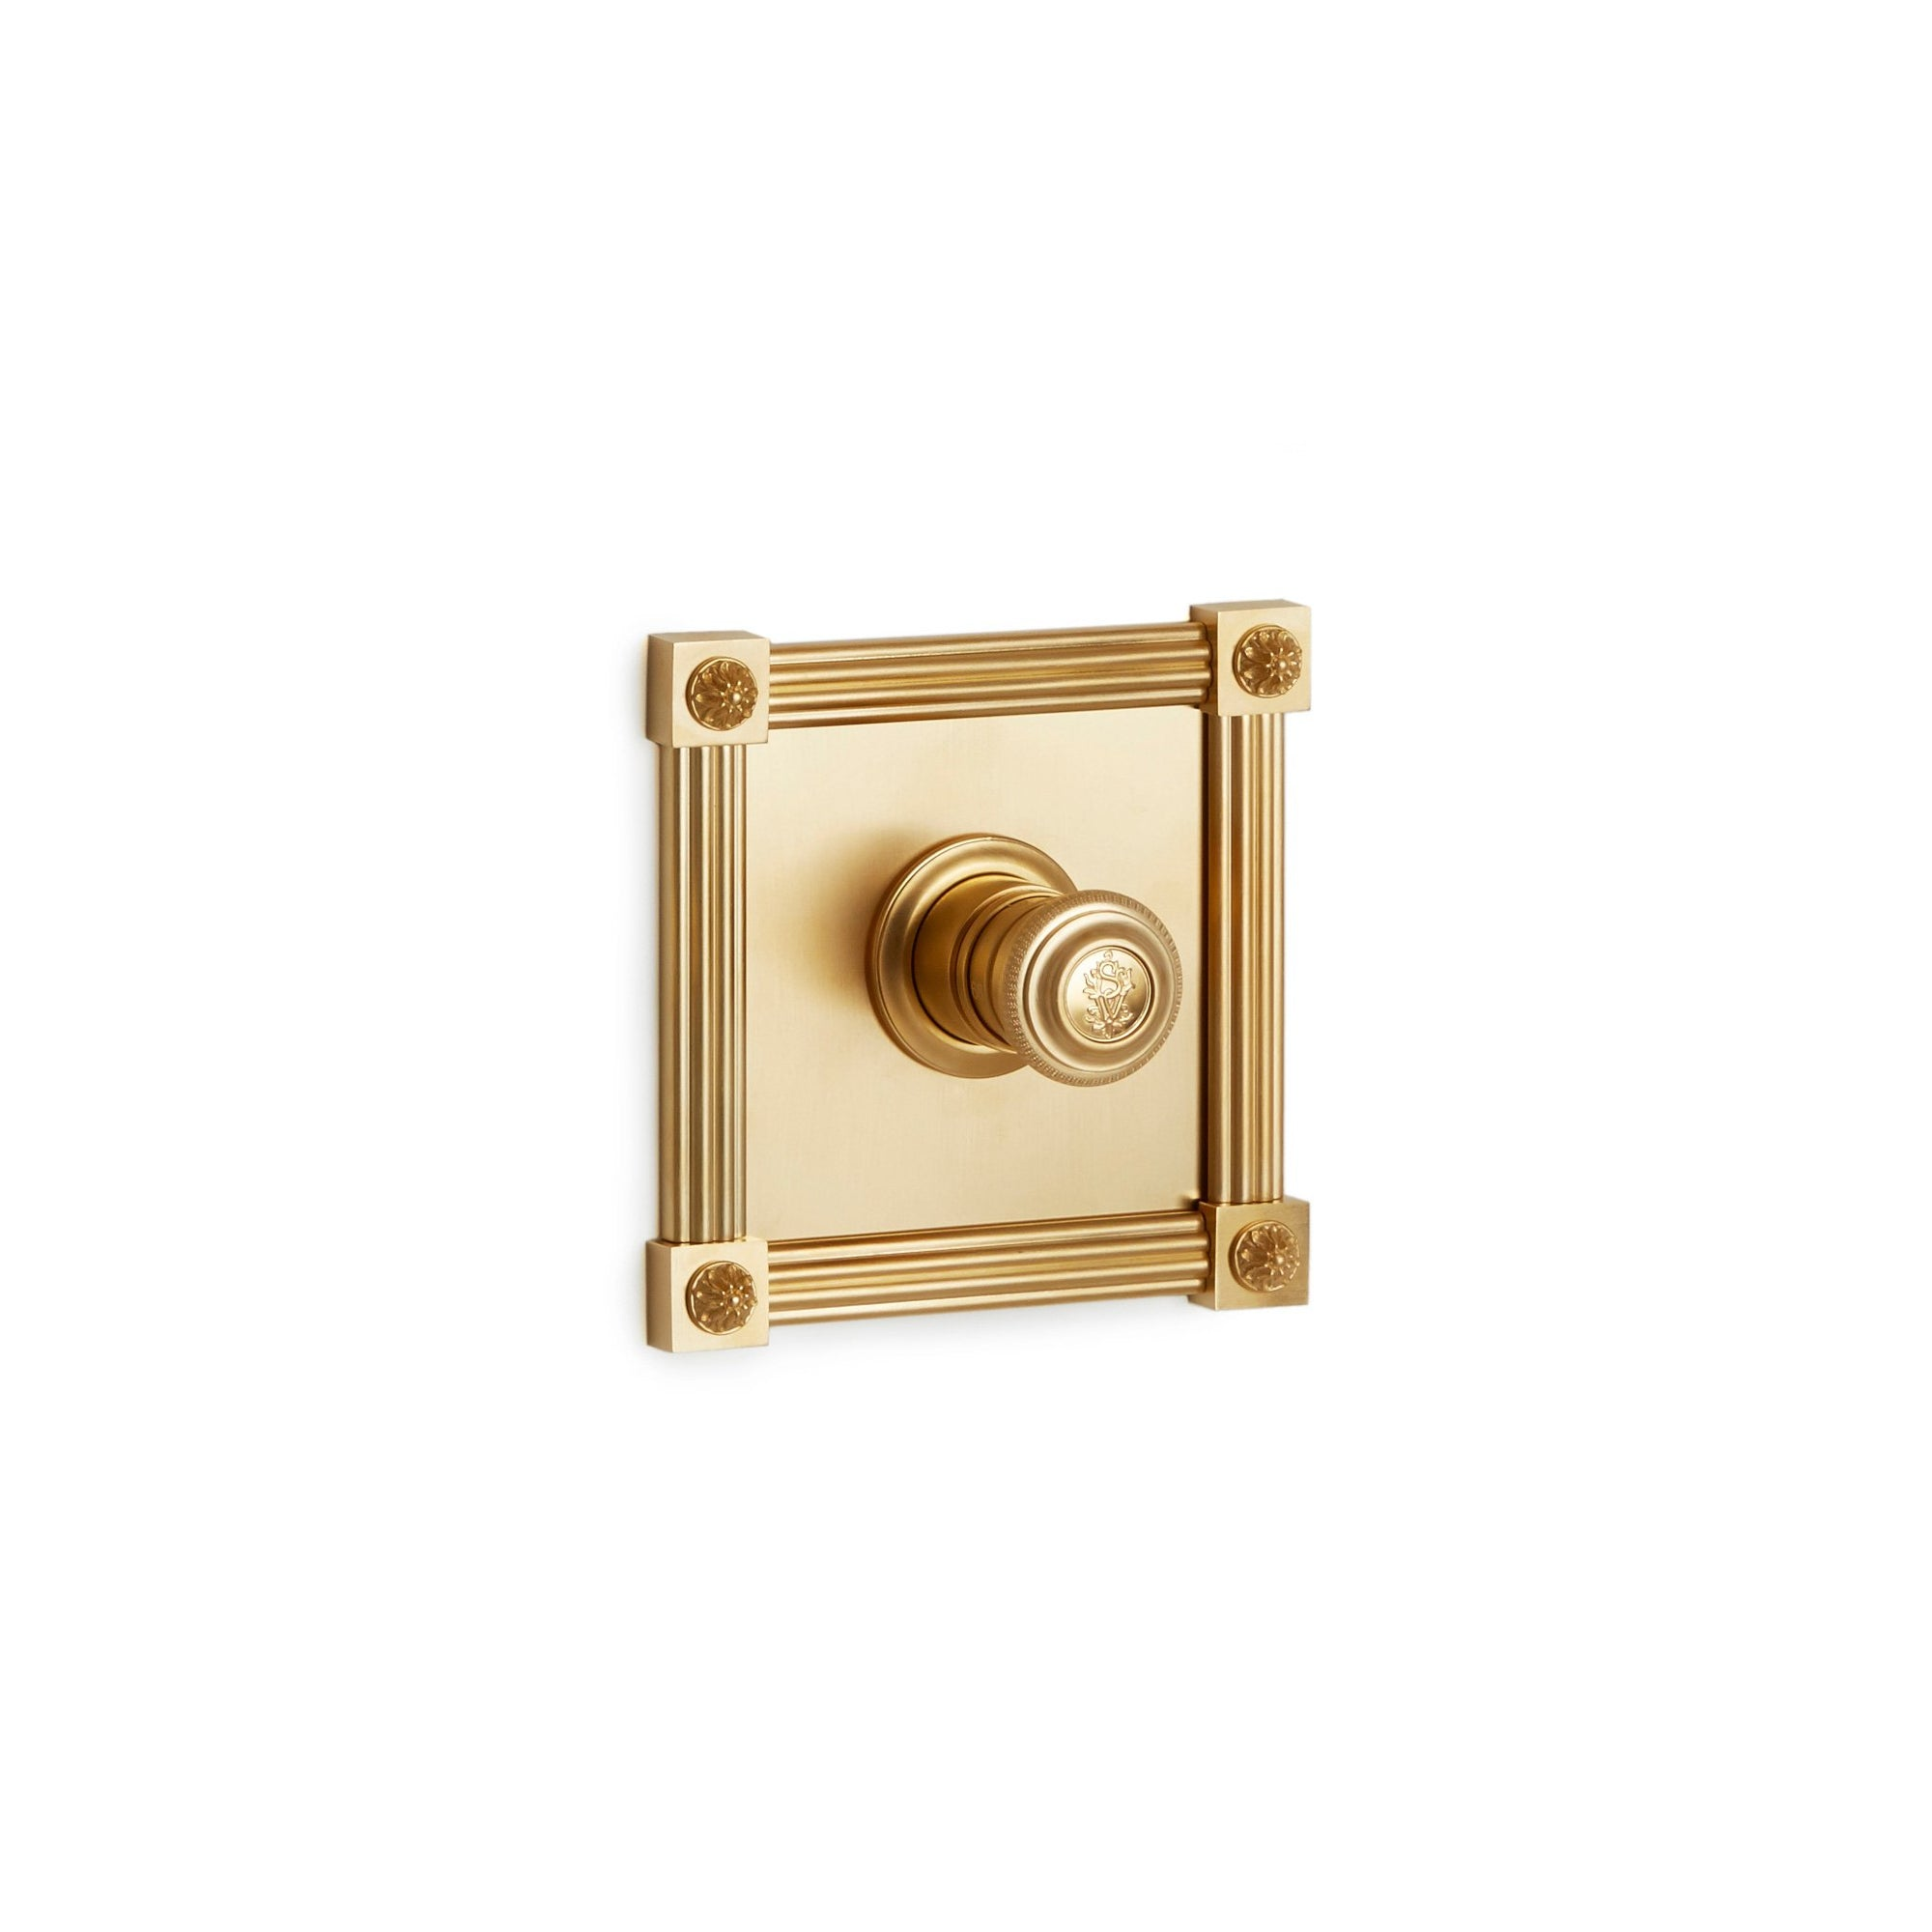 TMO06KN-LOGO-GP Sherle Wagner International Reeded Rosette High Flow Thermostatic Trim in Gold Plate metal finish